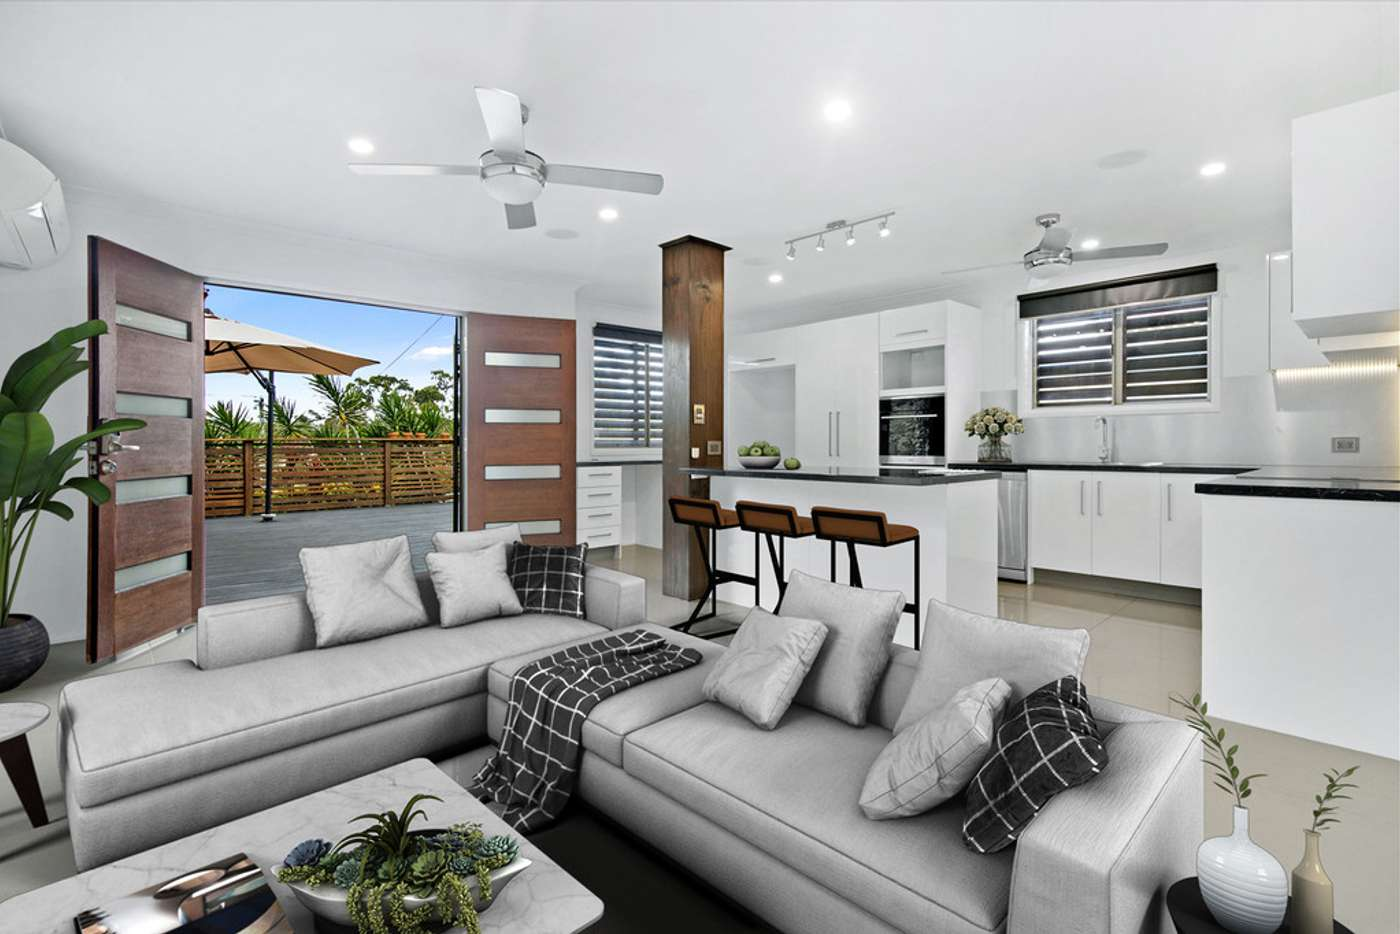 Main view of Homely house listing, 14 Sungold Avenue, Southport QLD 4215